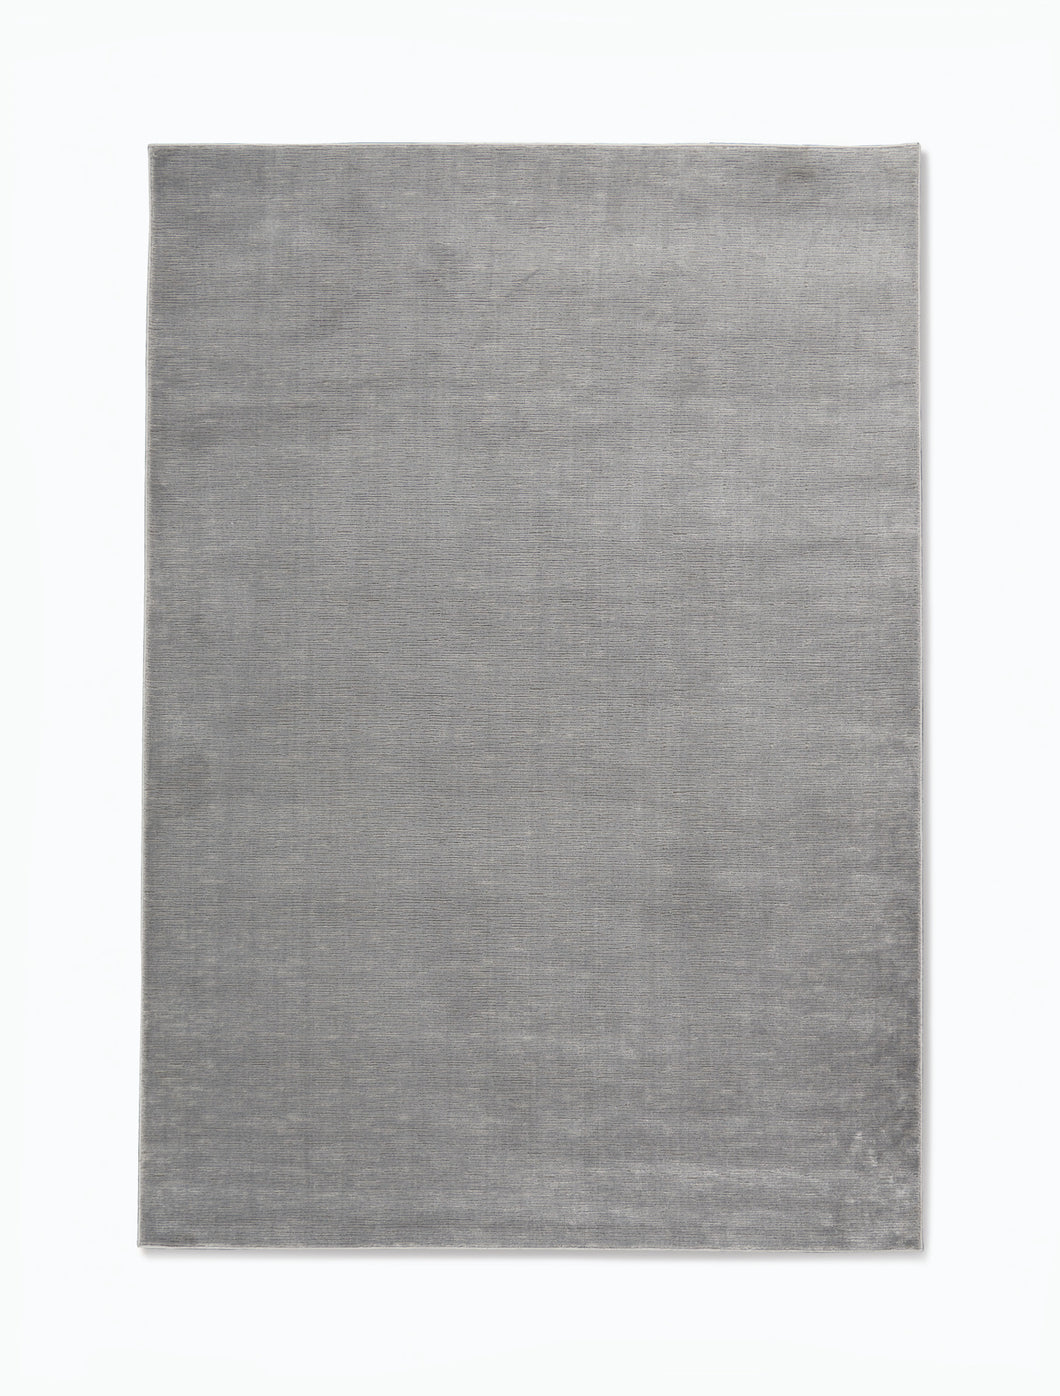 Calvin Klein Jackson CK781 Grey 8'x11' Large Striated Rug CK781 Grey